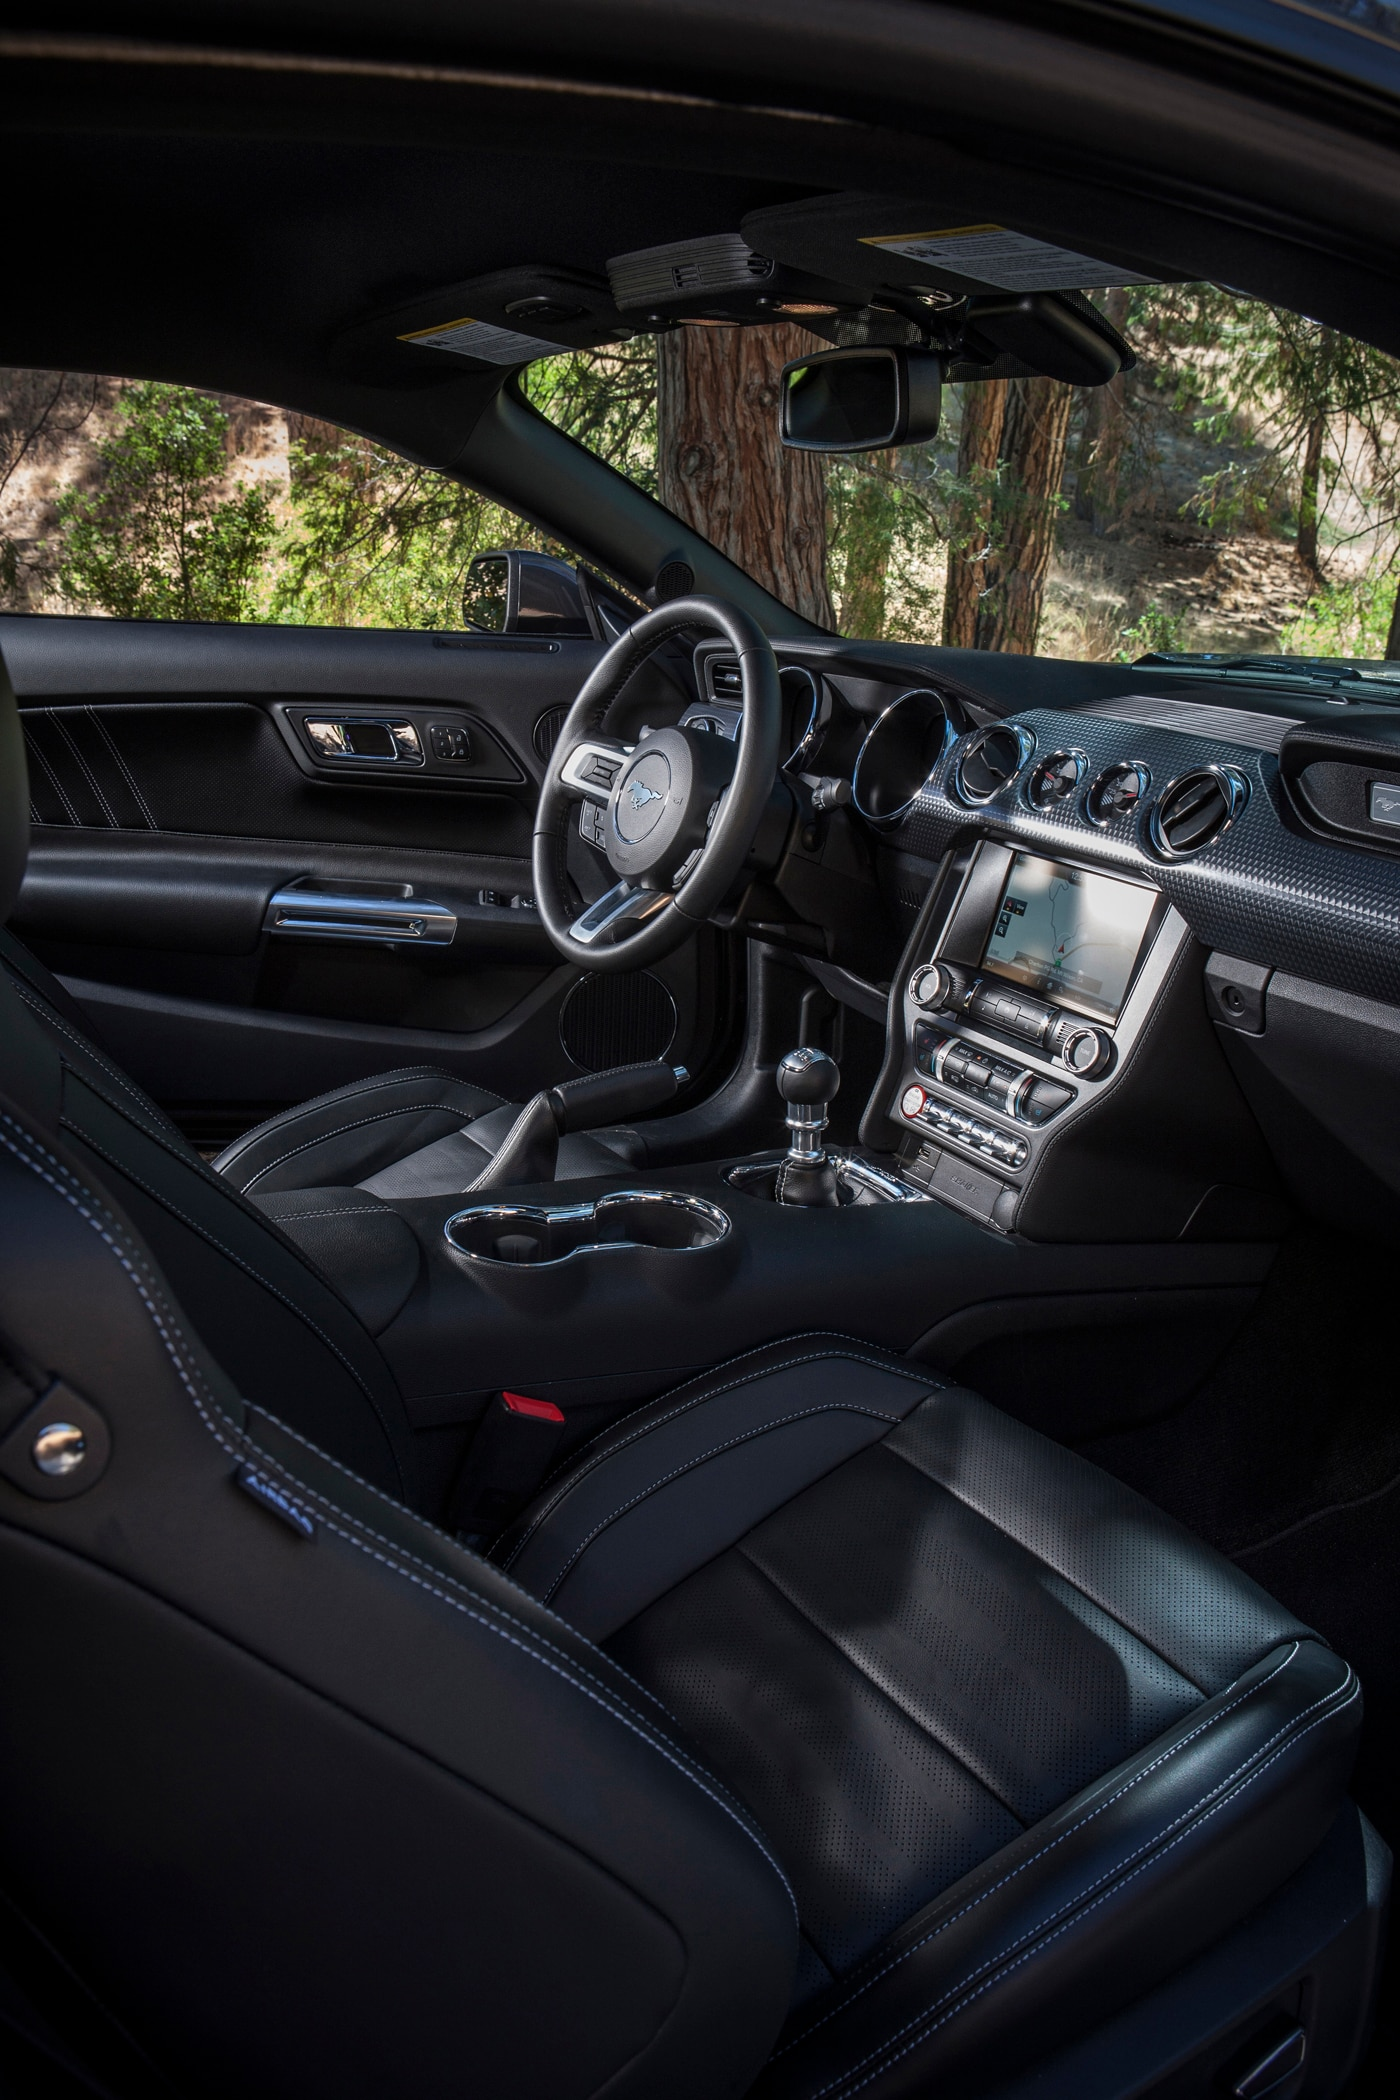 Ford claims mustang as best selling sport coupe worldwide for Ford mustang 2015 interior